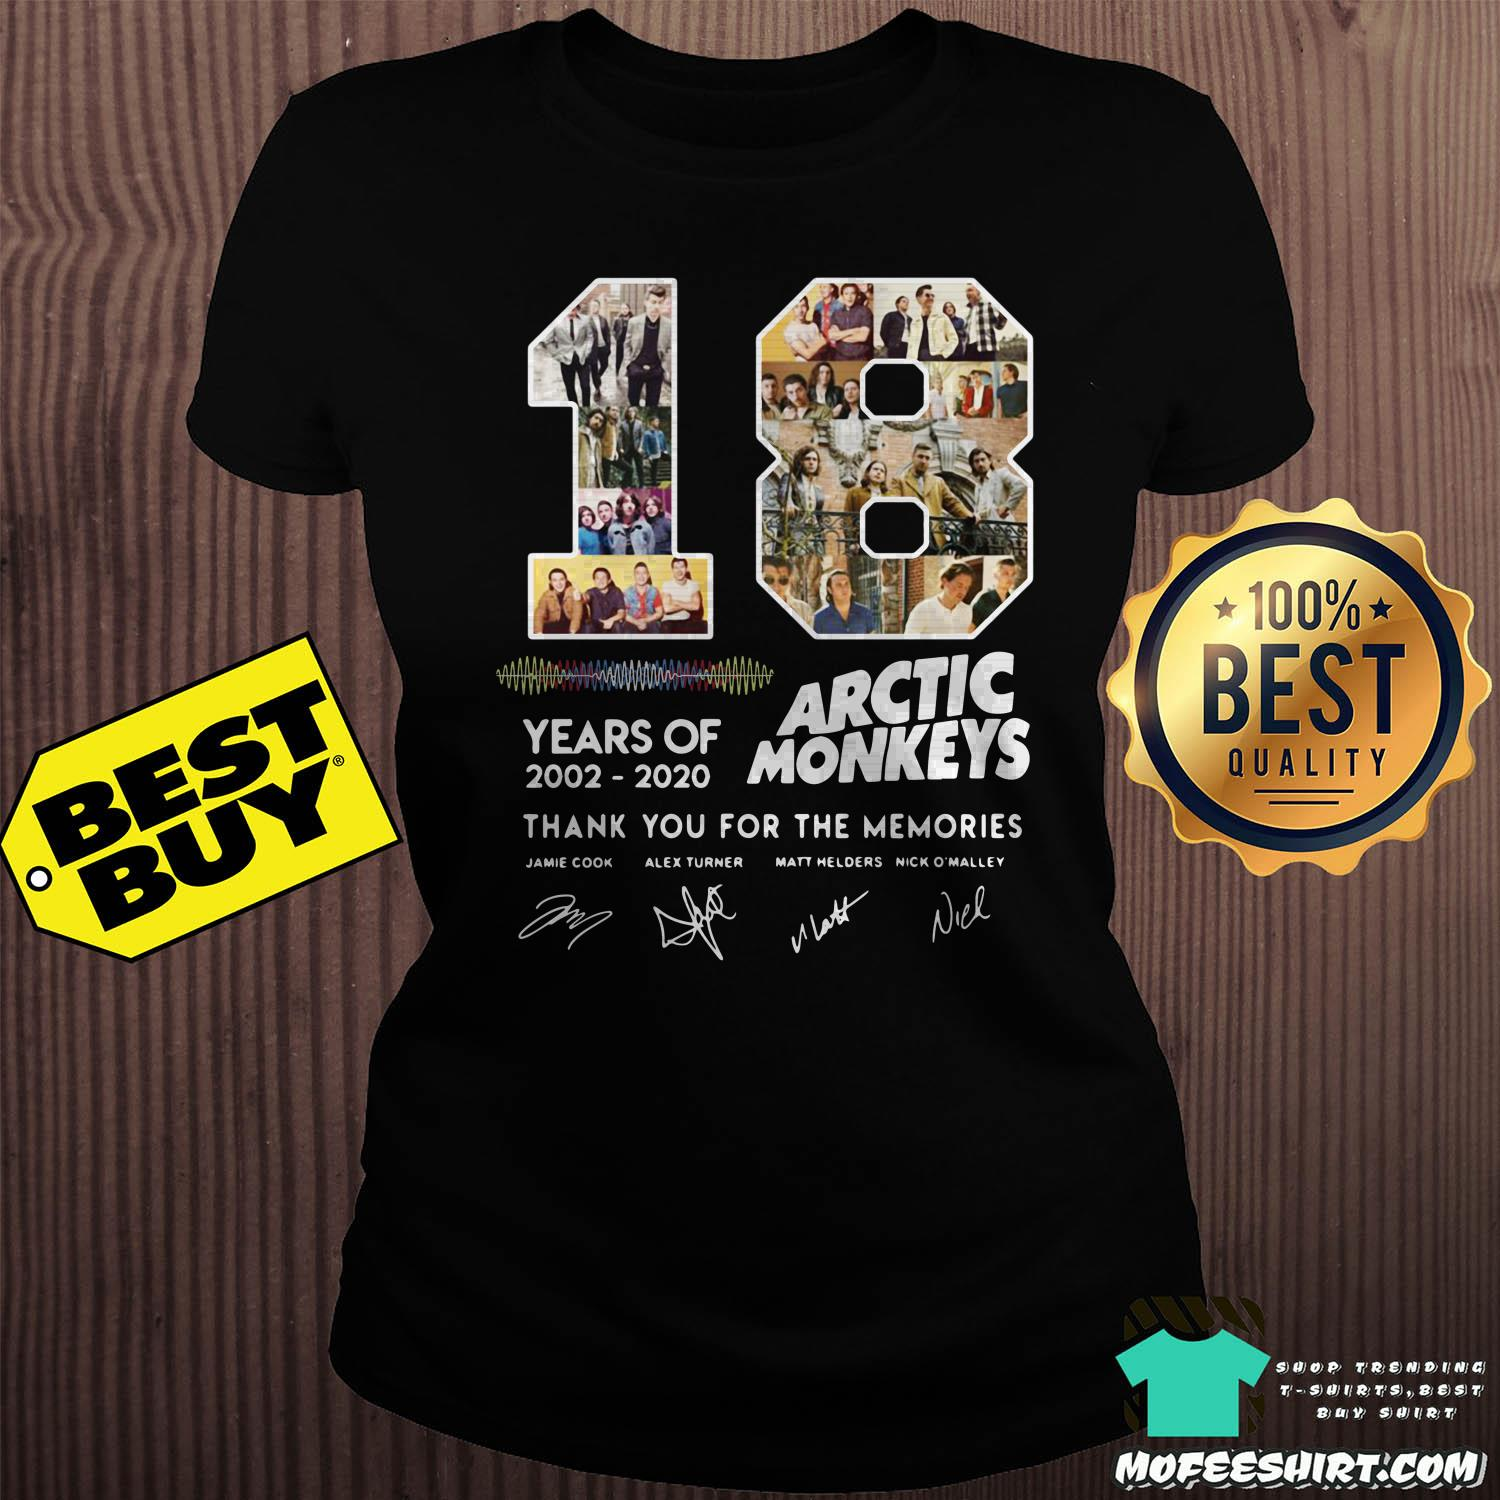 18 years of 2002 2020 arctic monkeys thank you for the memories signature ladies tee - 18 Years Of 2002 - 2020 Arctic Monkeys Thank You For The Memories Signature Shirt